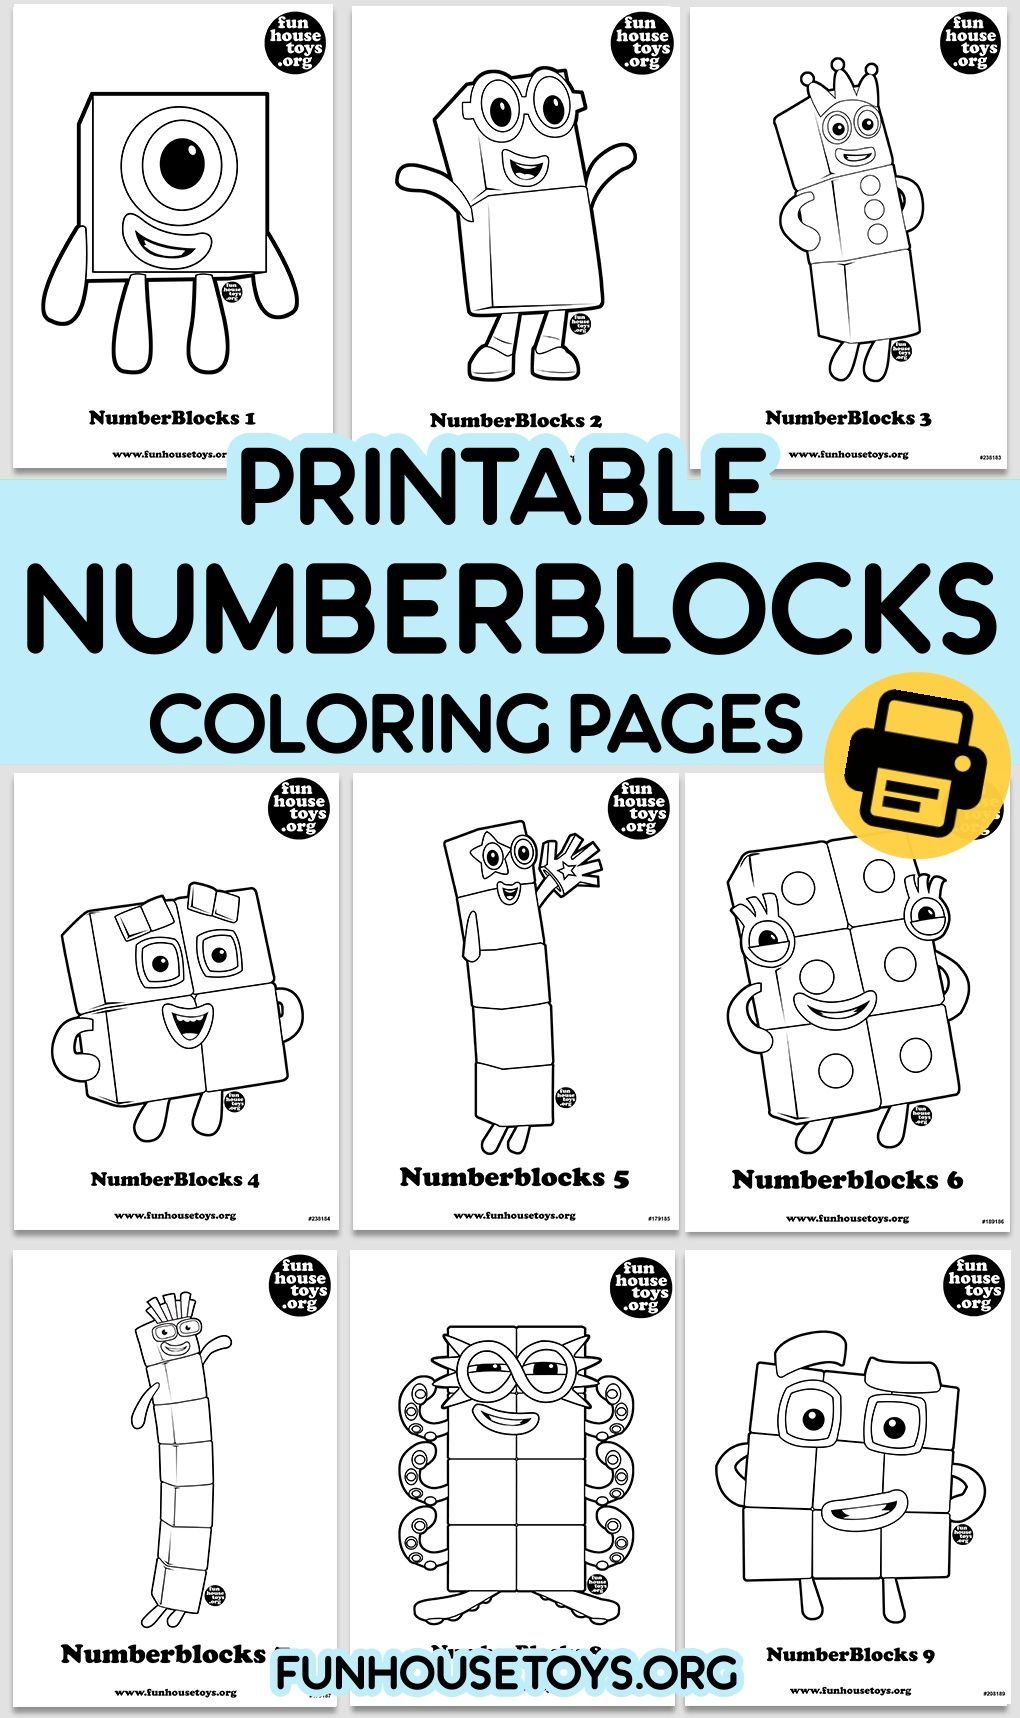 Numberblocks Coloring Pages for Kids  Fun printables for kids